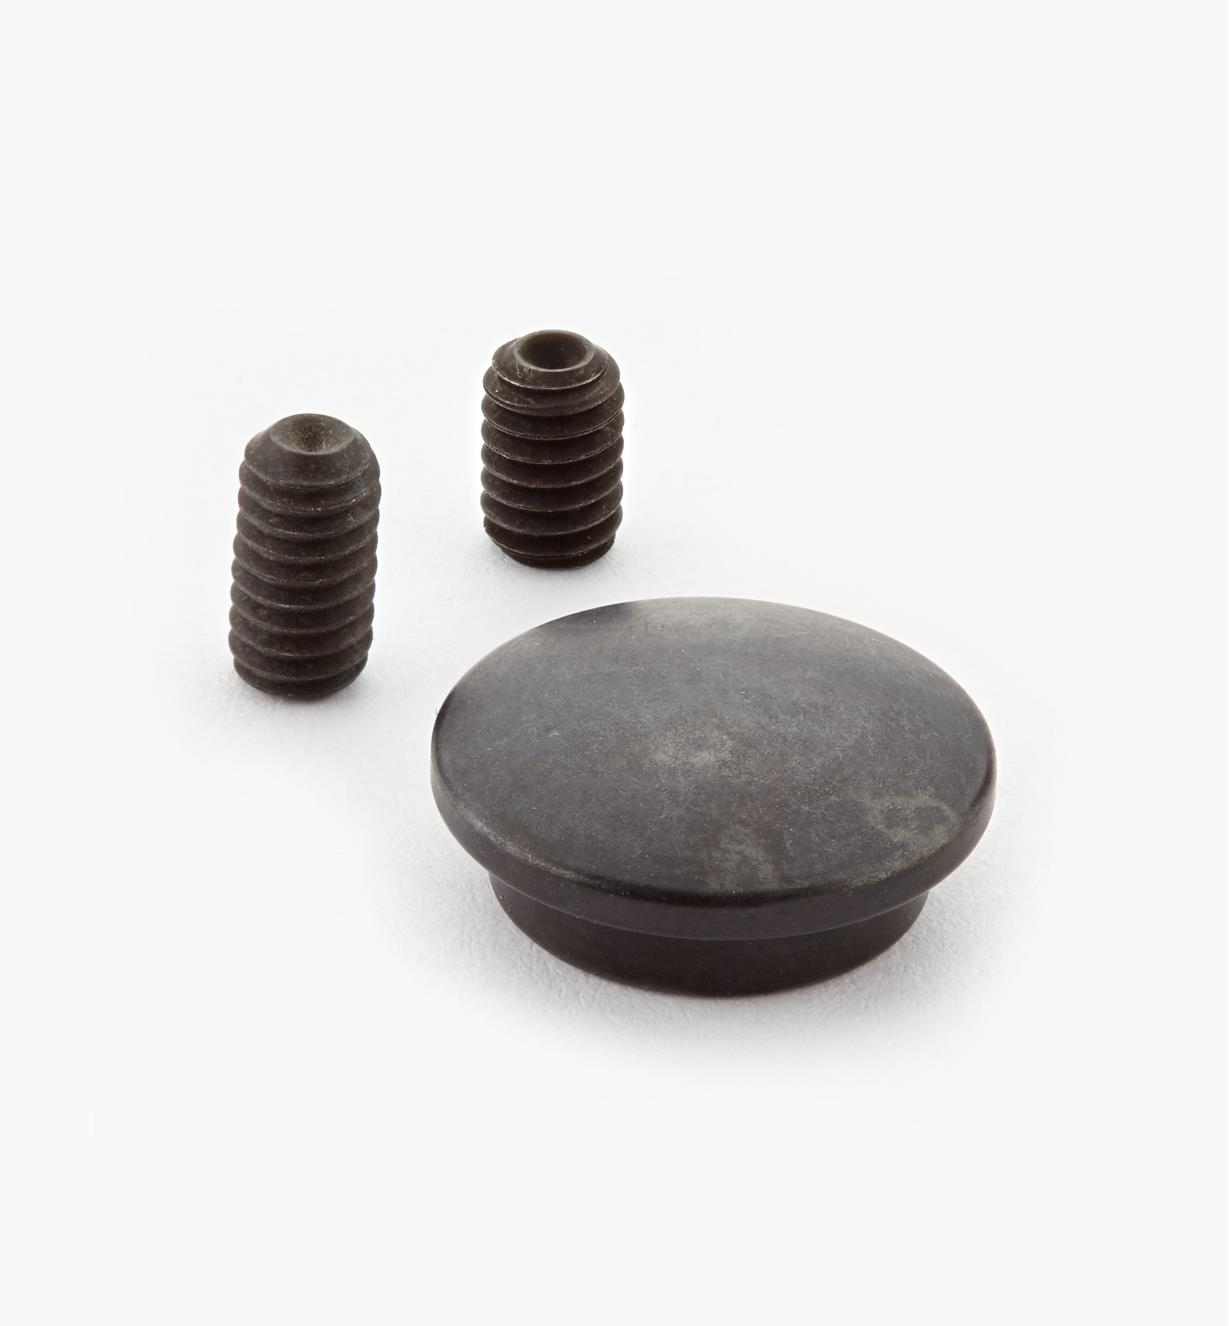 "05G0603 - Veritas 3"" 1/4 20 Knock-Down Fastener, Black Dowel Cap, ea."